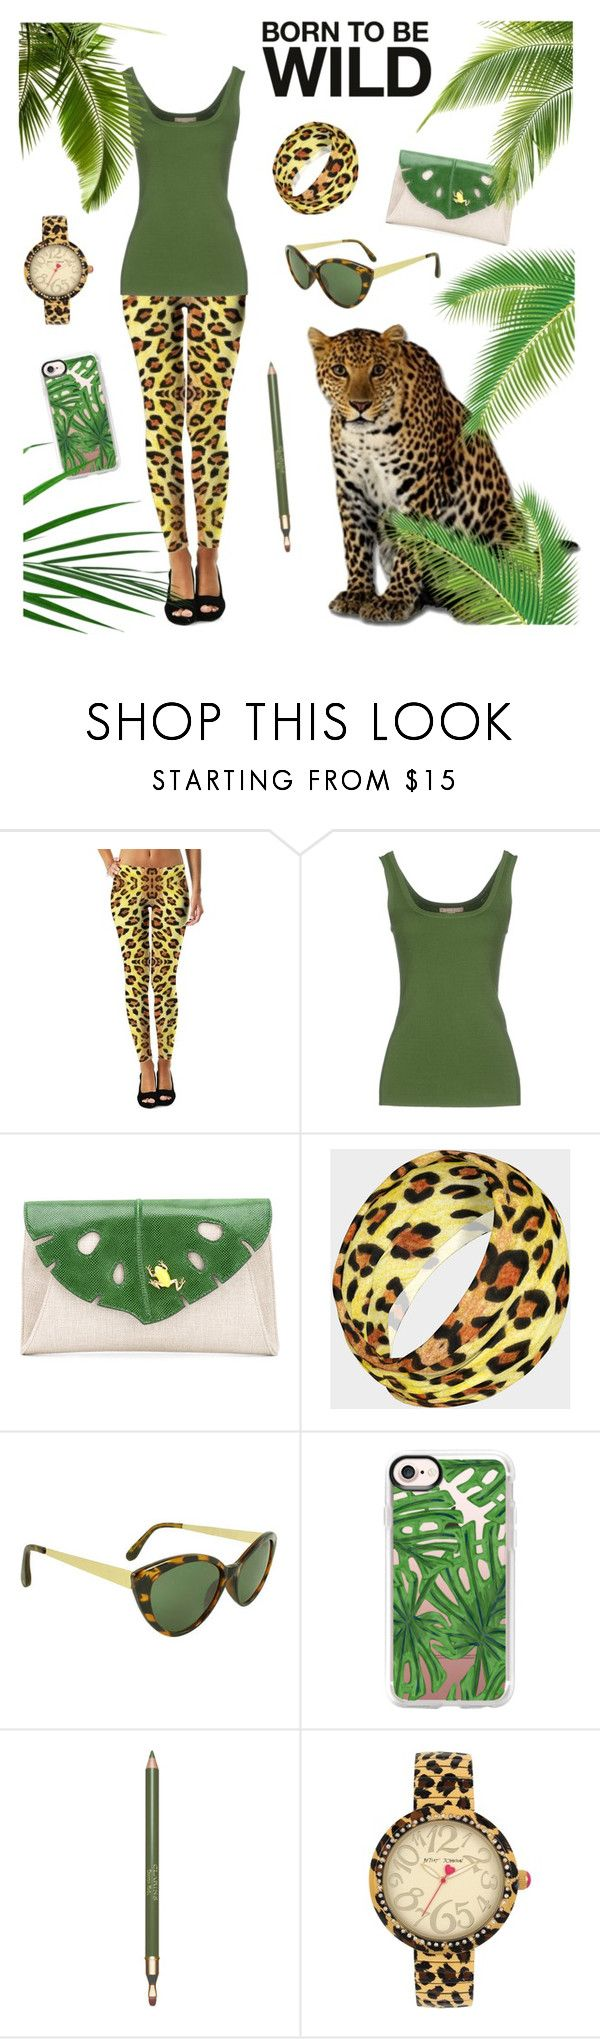 Born to be wild by @savousepate on @polyvore #kaki #green #leopardprint #pantherprint #animalprint